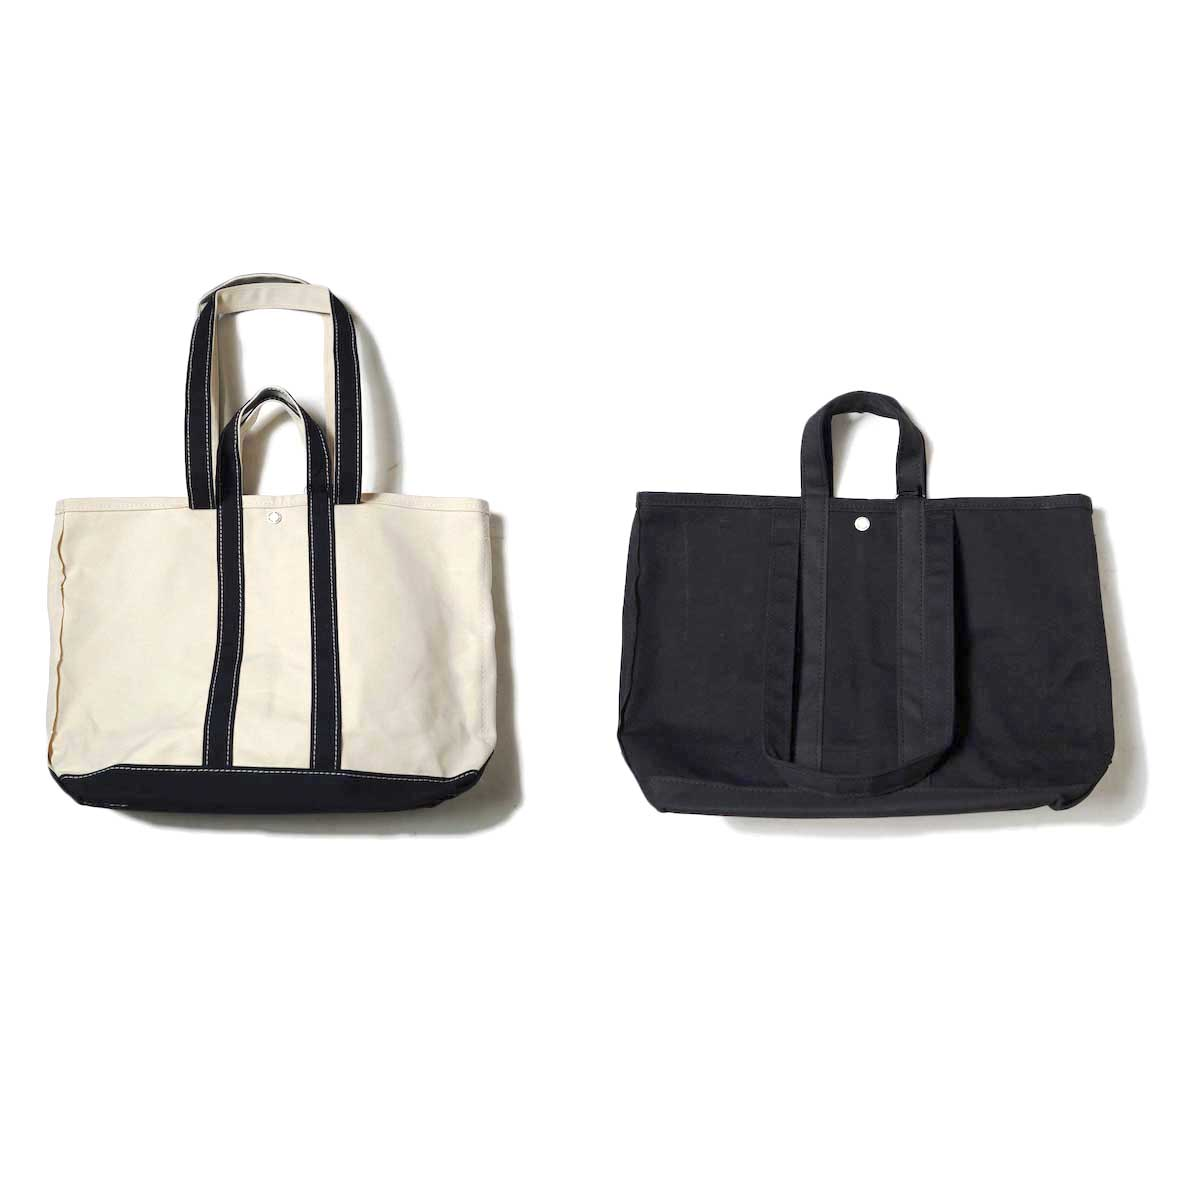 UNIVERSAL PRODUCTS / TEMBEA MARKET TOTE